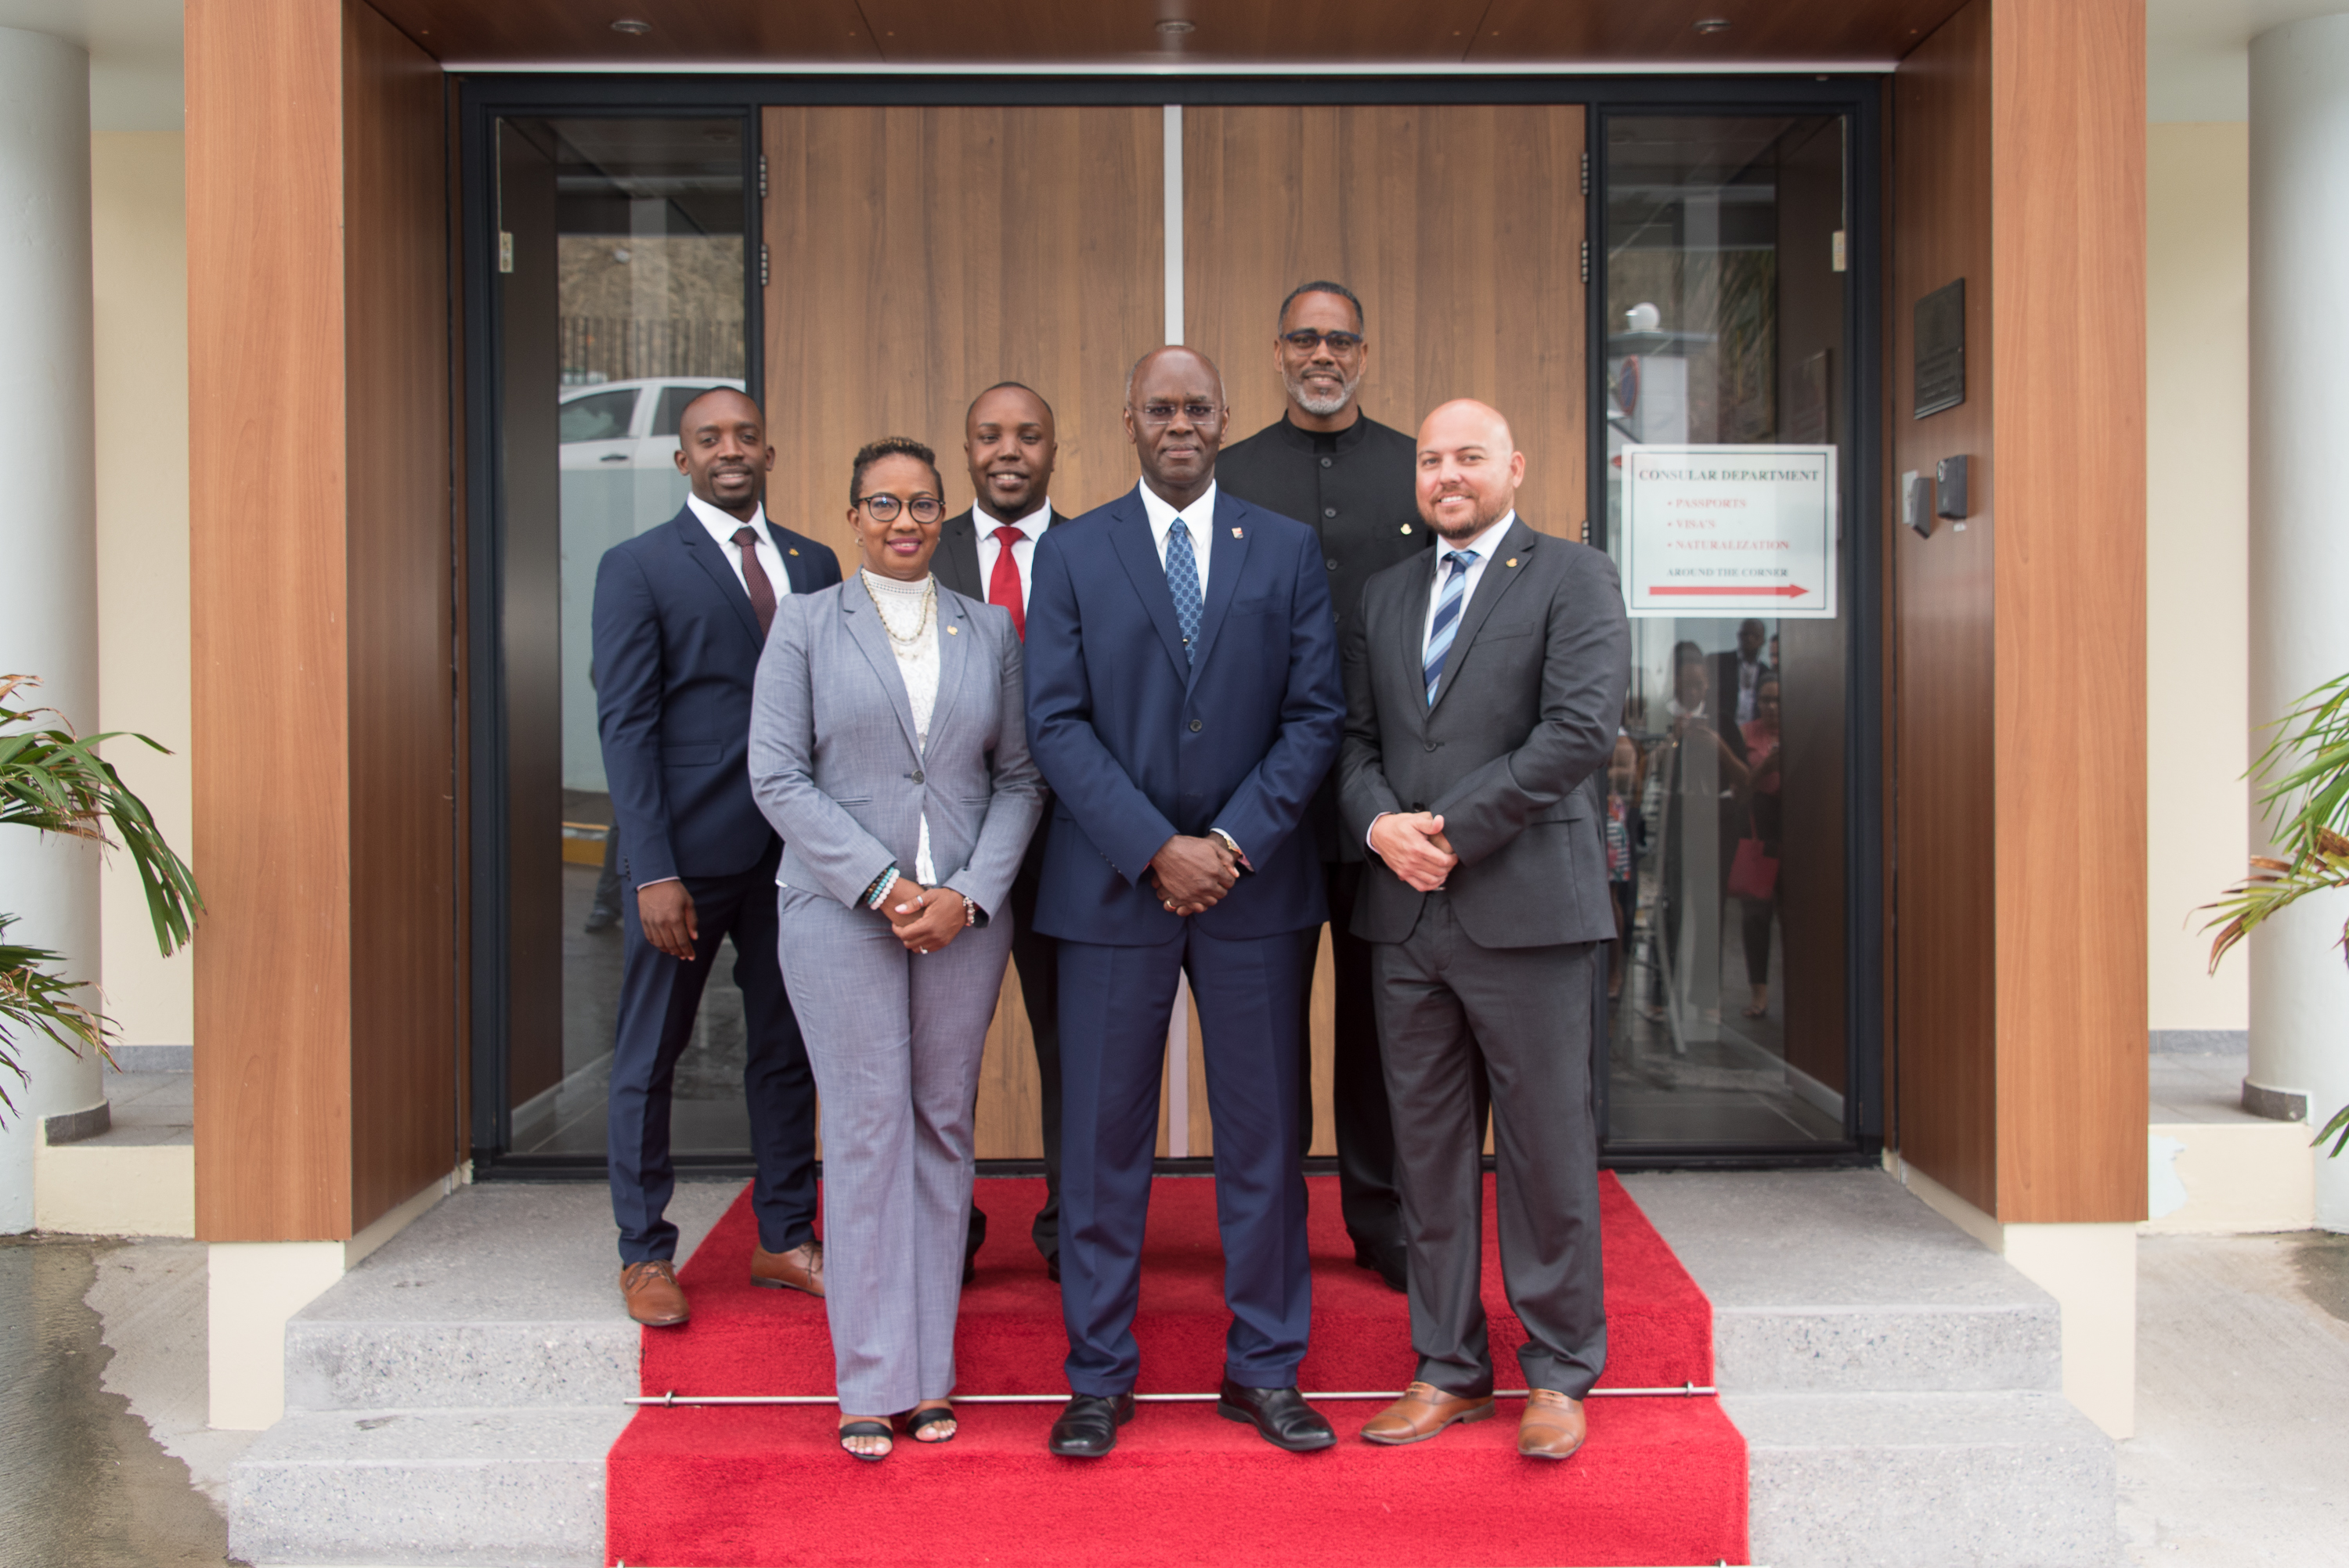 Formateur Jacobs forms new Interim Ministers Cabinet